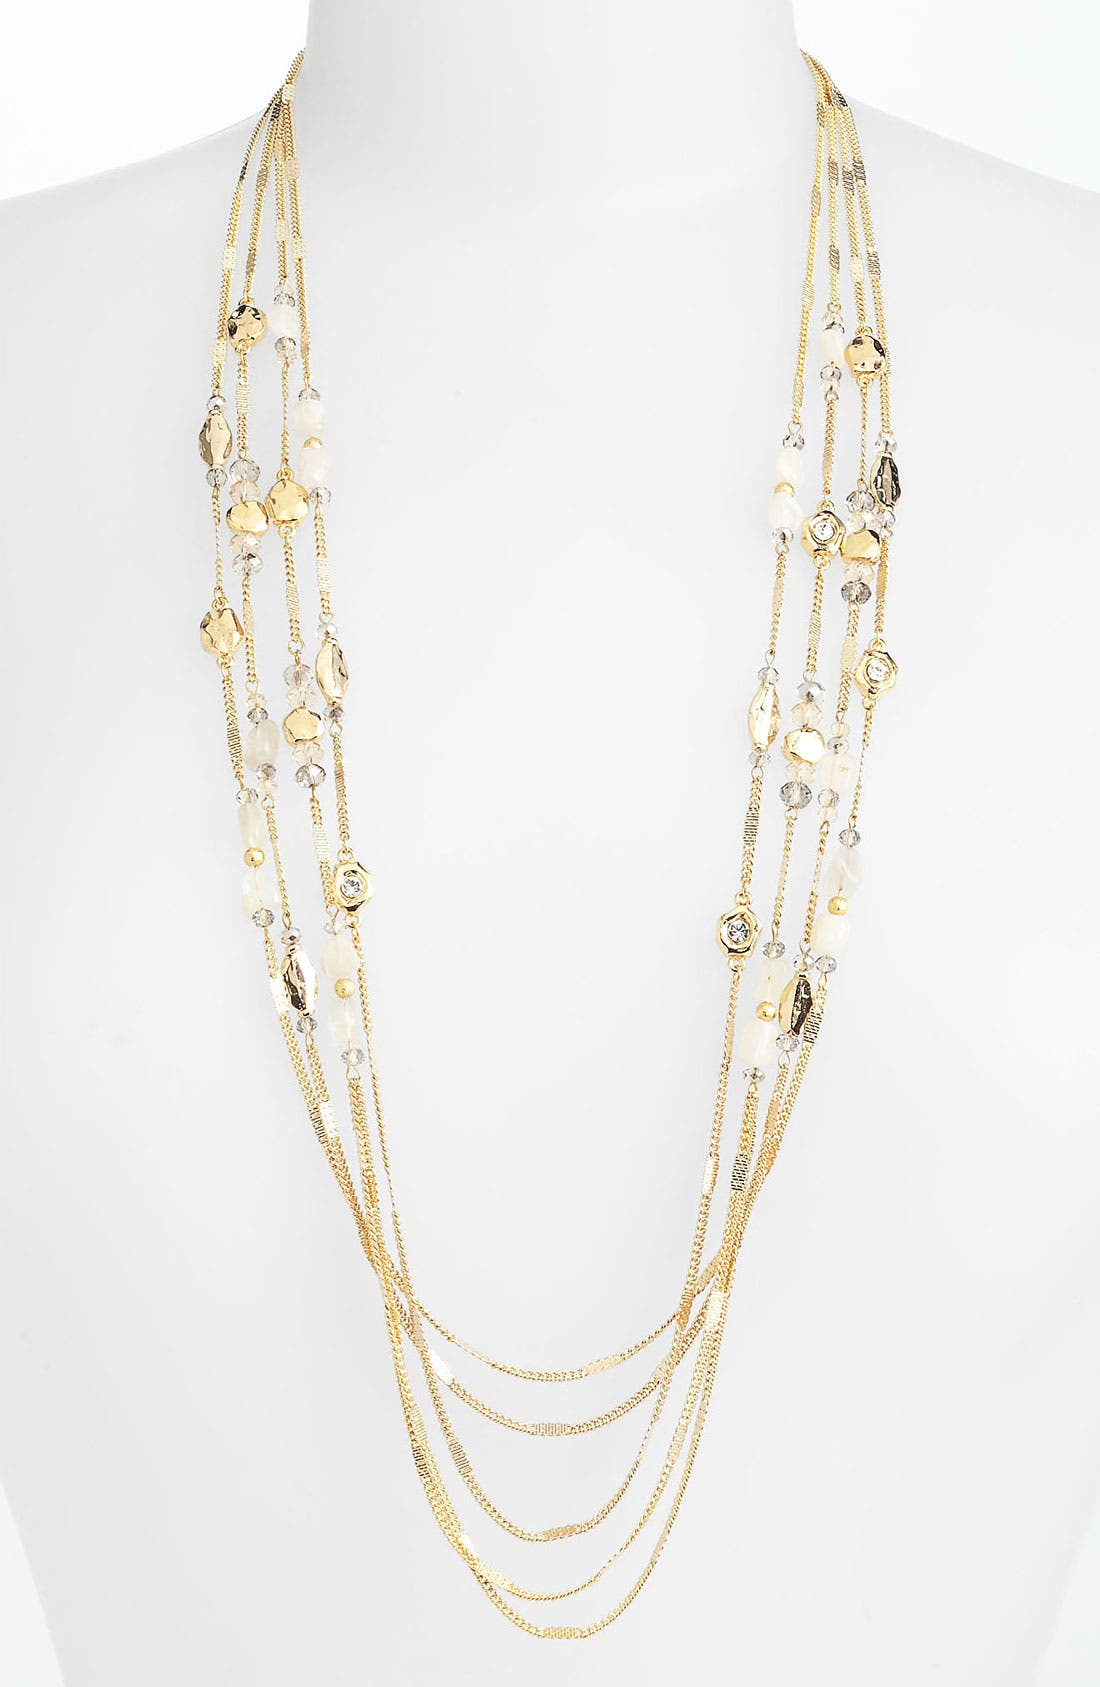 Main Image - Nordstrom 'Sand Dollar' Multistrand Station Necklace